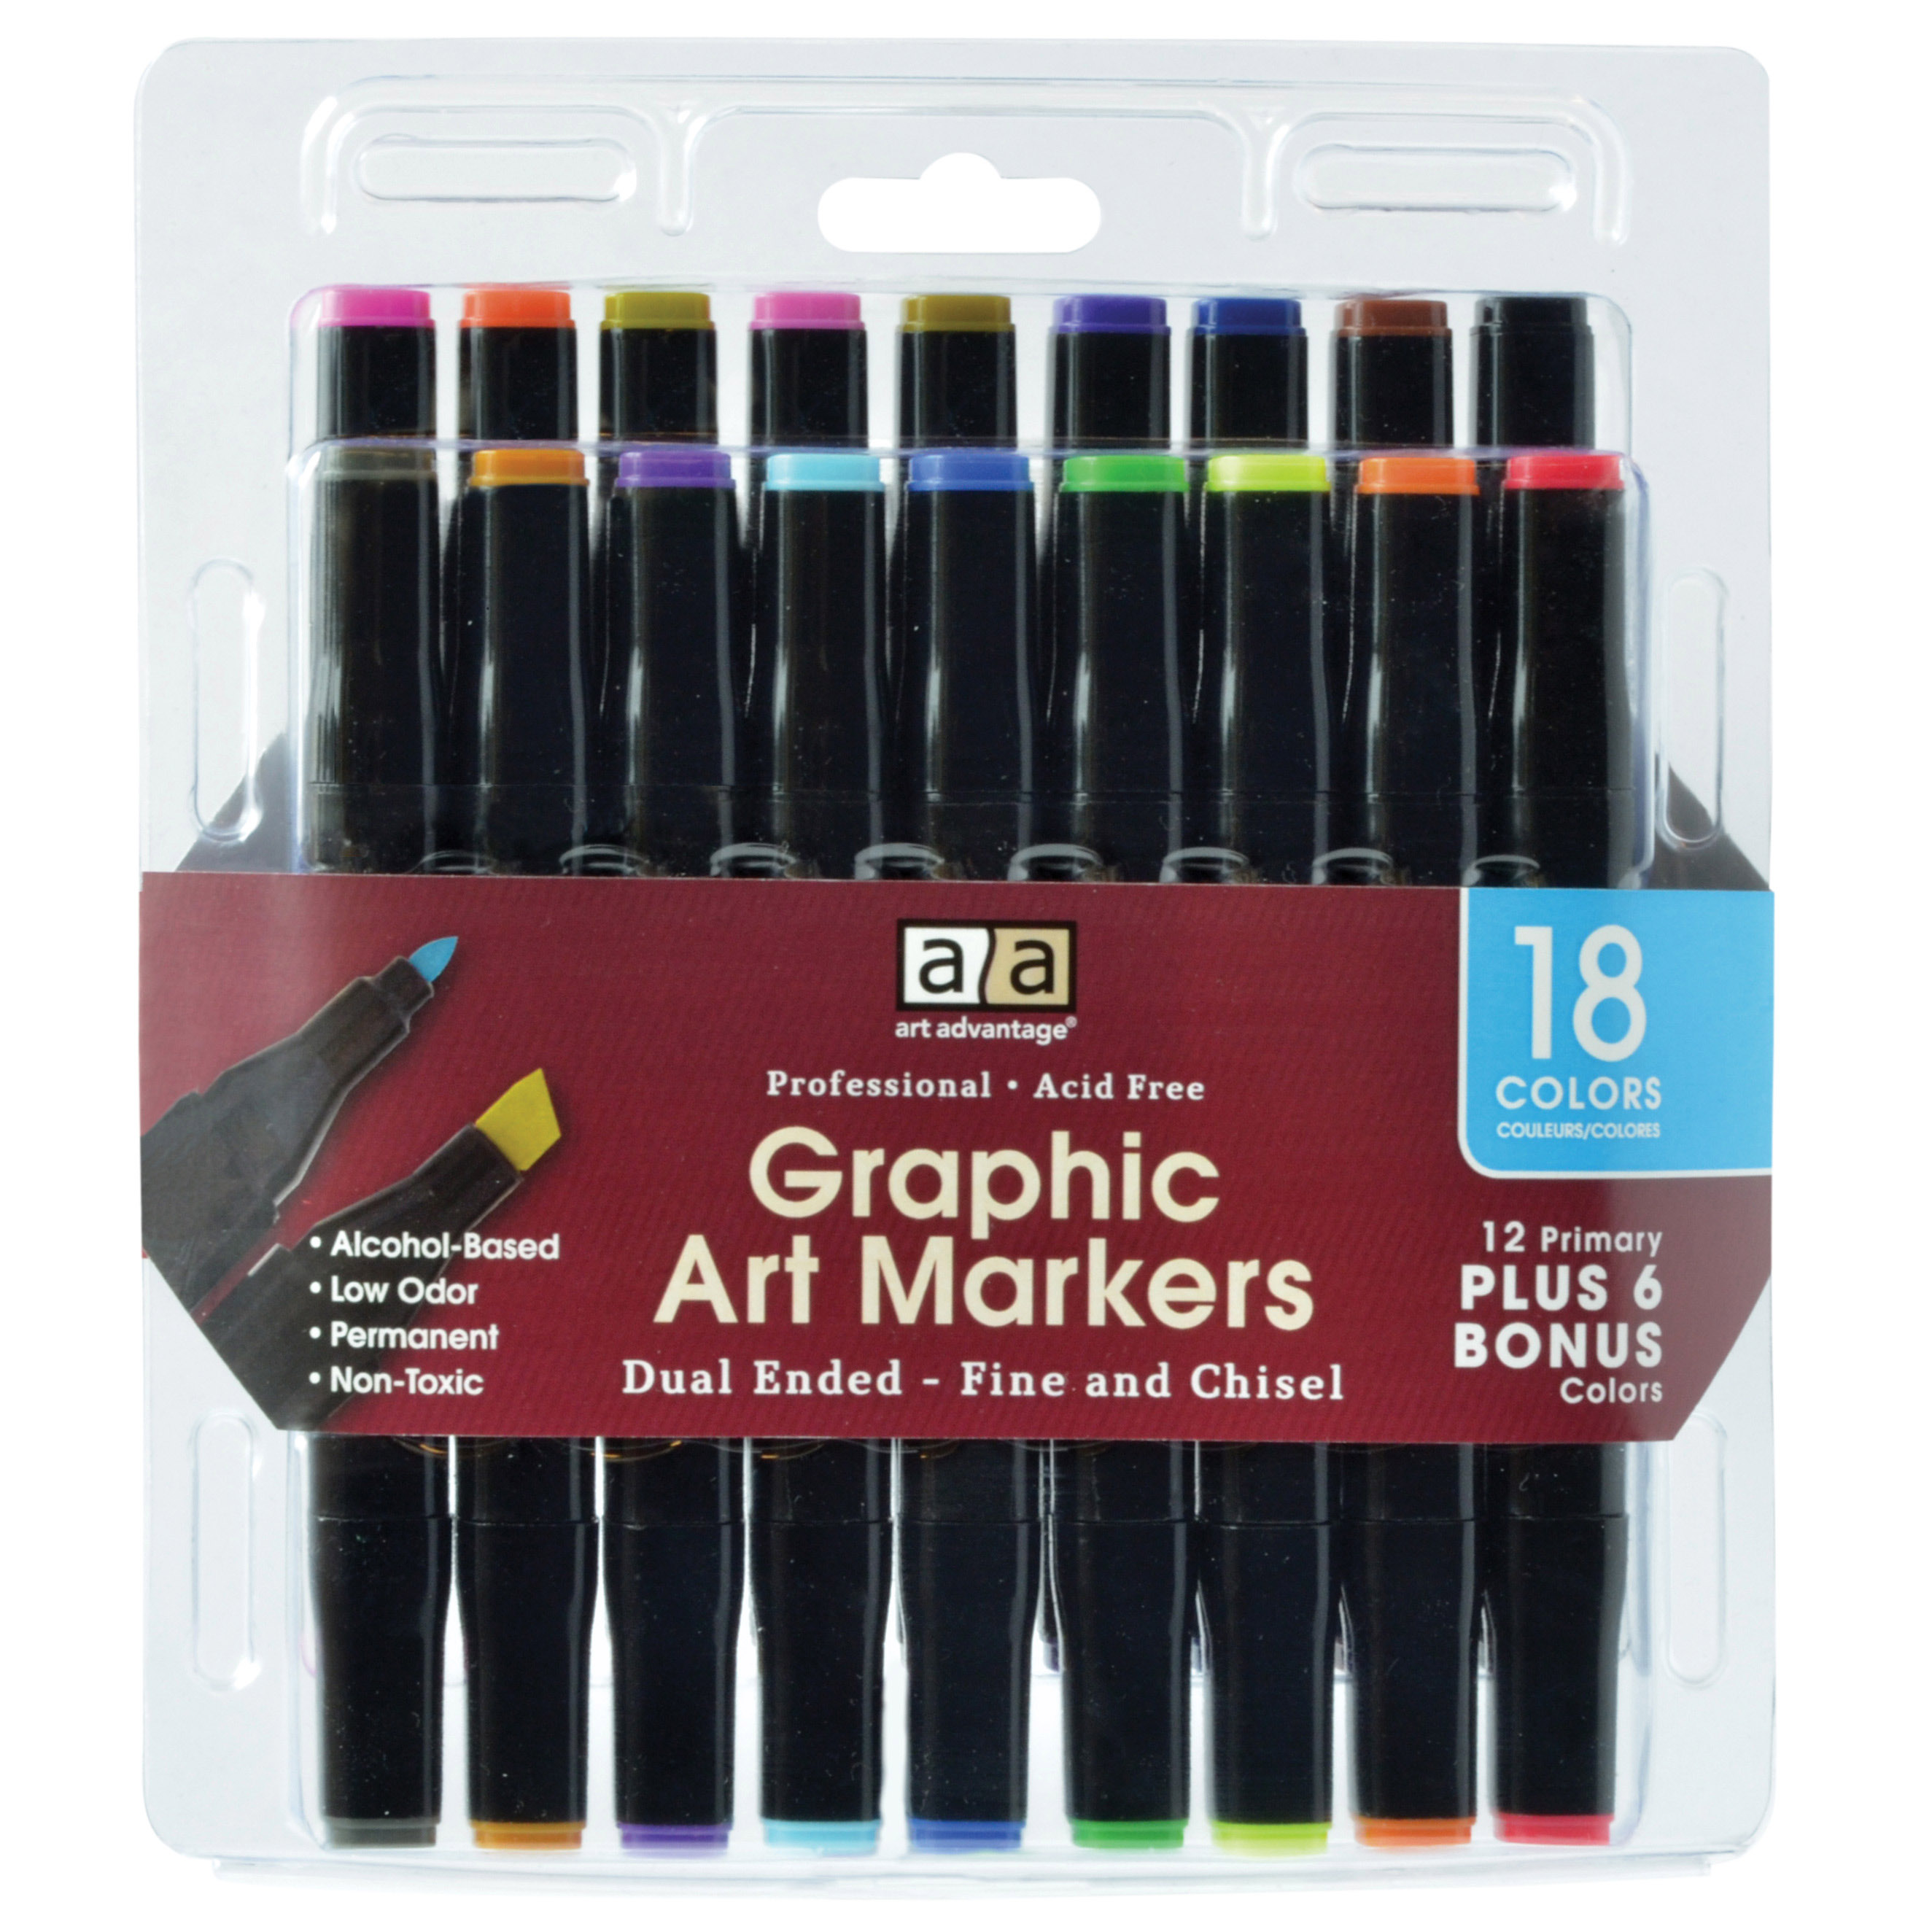 Art Advantage 18 Color Graphic Art Marker Set